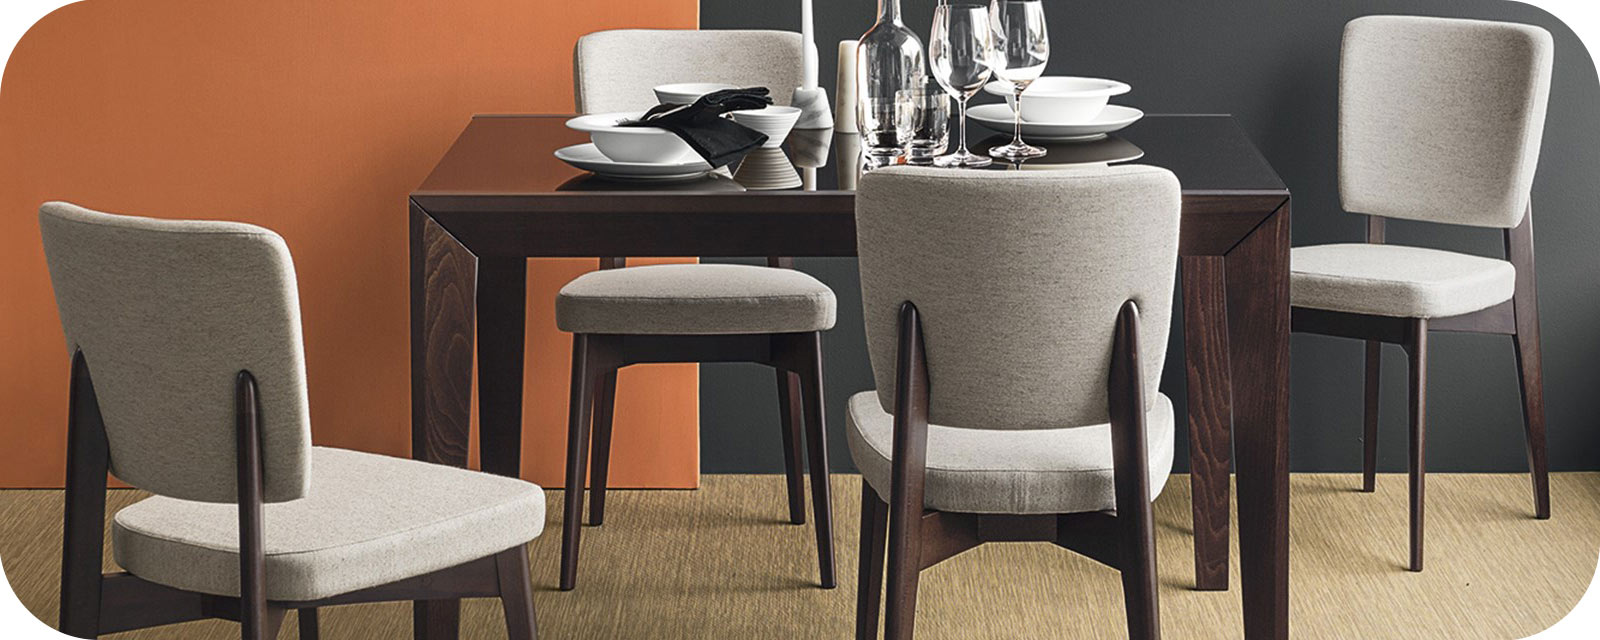 Sedia Calligaris Neon Chairs Stackable Chairs Folding Chairs Net And Feel Shop Online